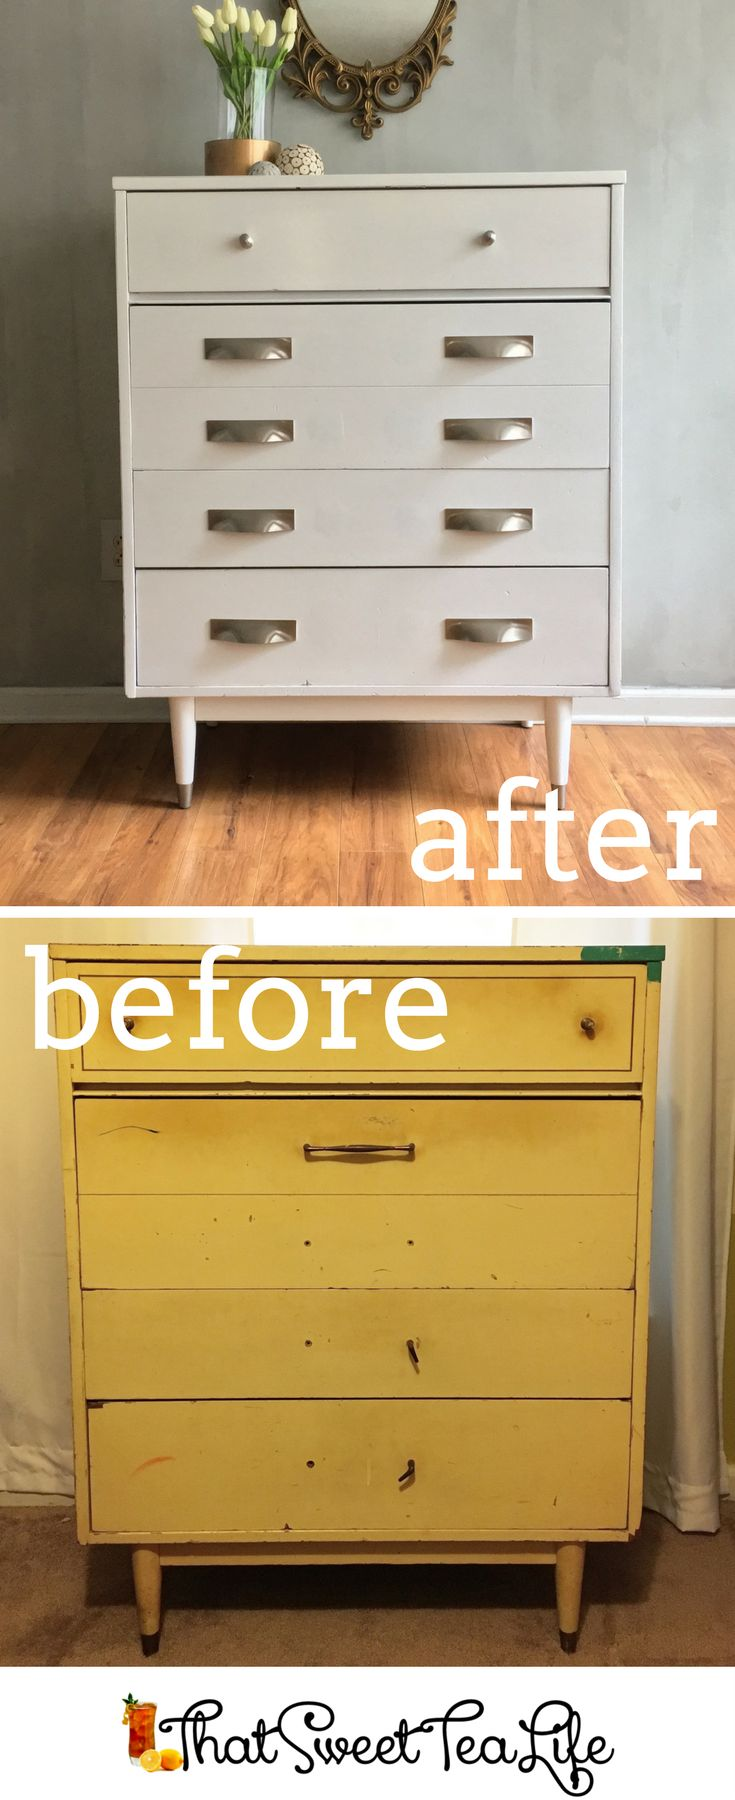 Beautiful Girls Bedroom Dresser Makeover | Mid Century Modern Dresser Makeover with a Modern Finish by That Sweet Tea Life | Furniture Makeover | How to Change Furniture Hardware | How to Paint Furniture | Furniture Painting Tips | Hardware for Dresser |Hardware for Drawers | Furniture Before and After | Painted Furniture Ideas | Drawer Pulls